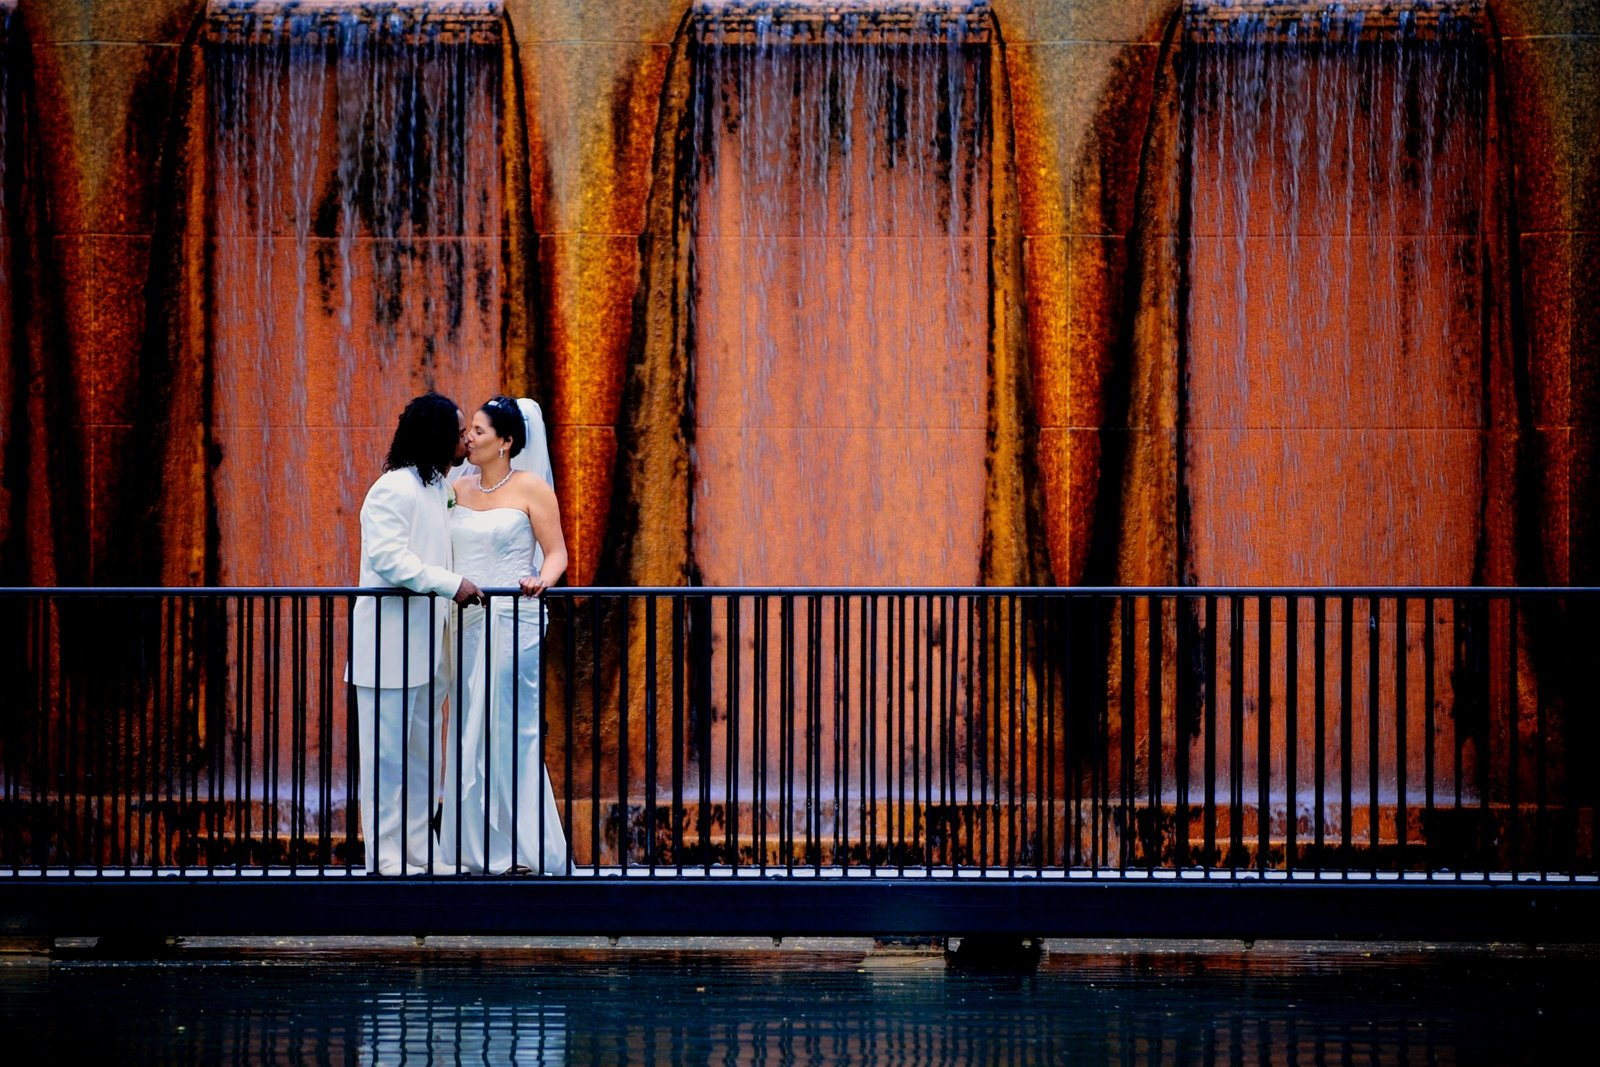 Photo of the Bride & Groom across the water in Indianapolis, IN